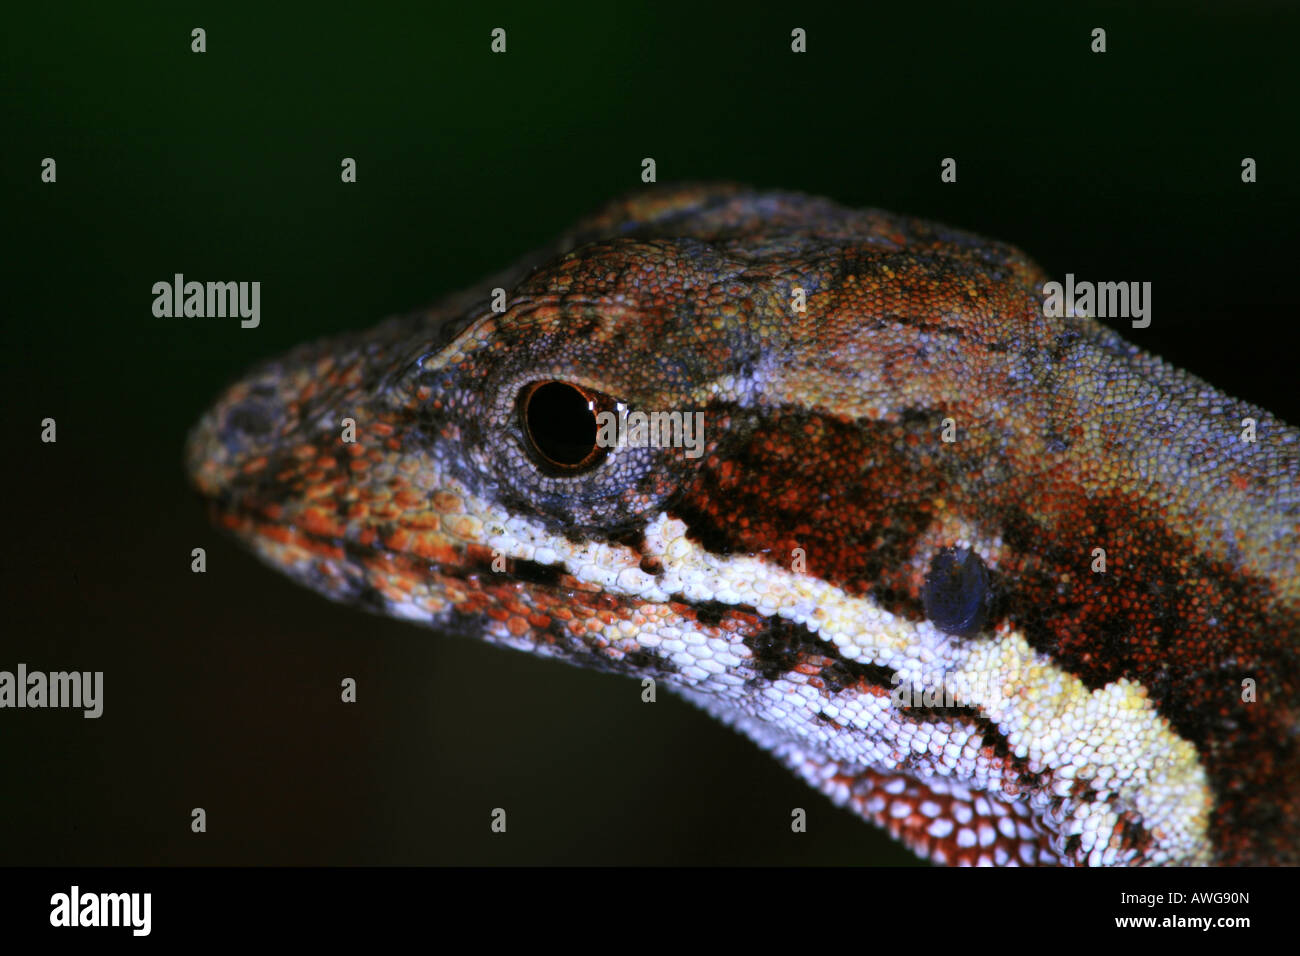 A lizard in Volcan Baru national park in the Chiriqui province, Republic of Panama. - Stock Image